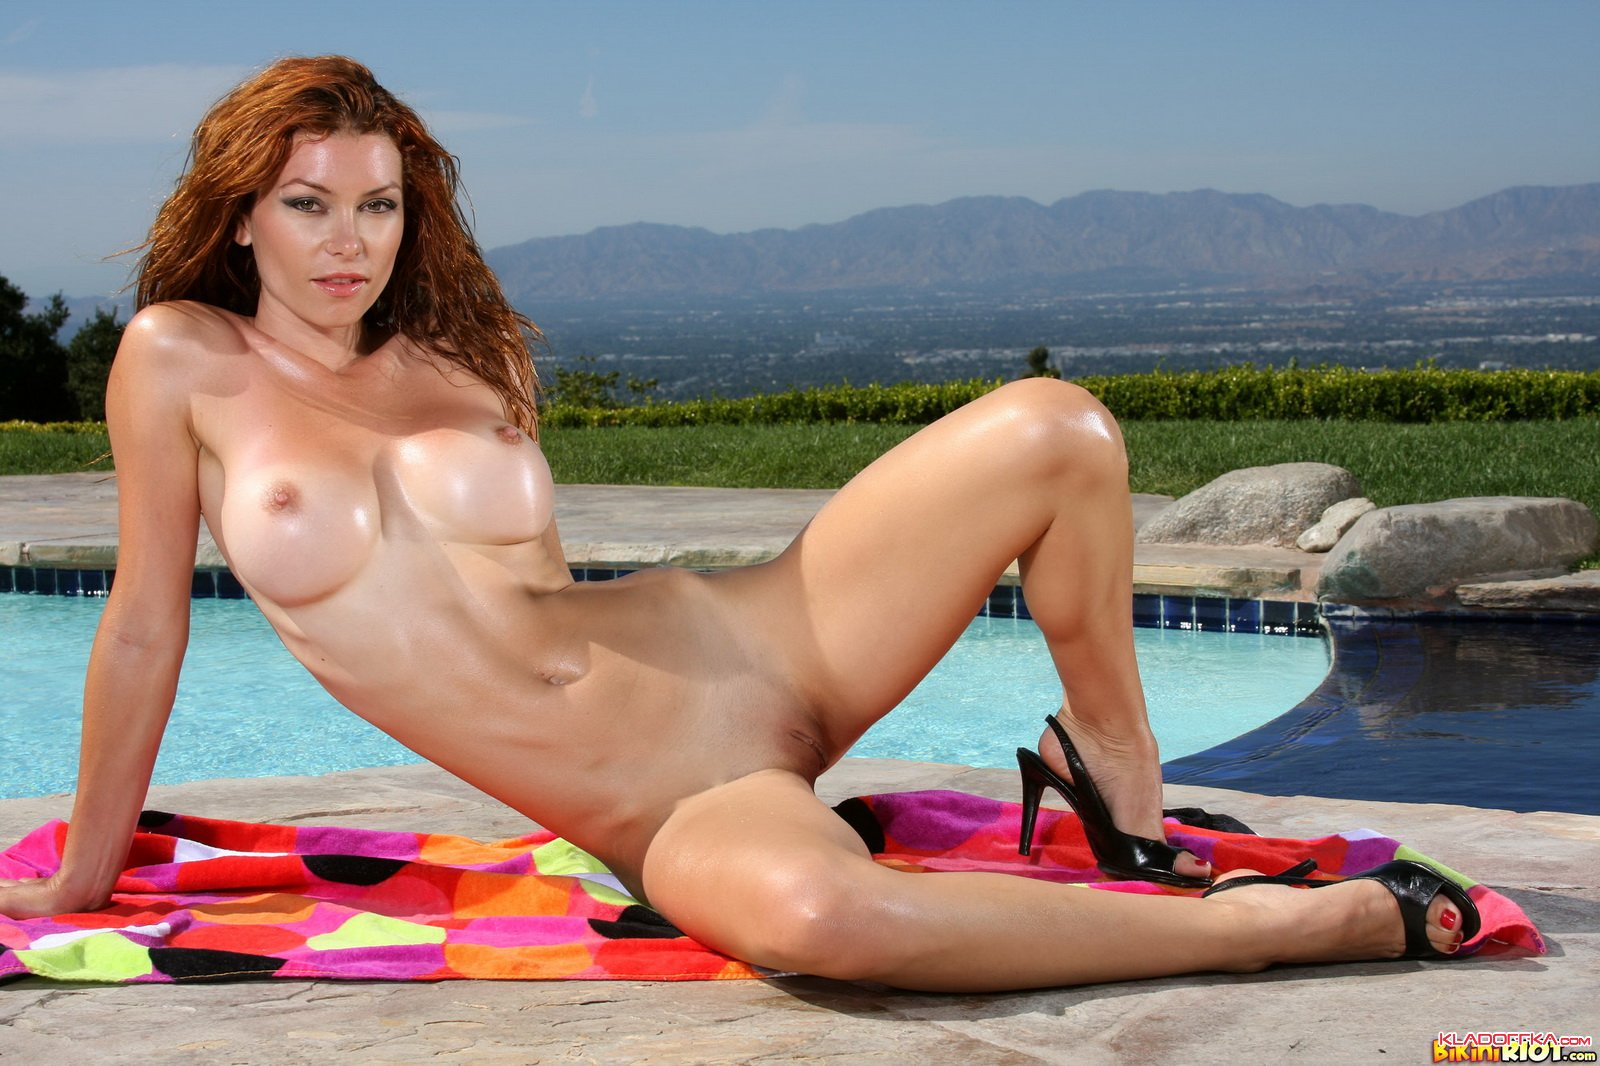 Are heather vandeven bikini riot you for